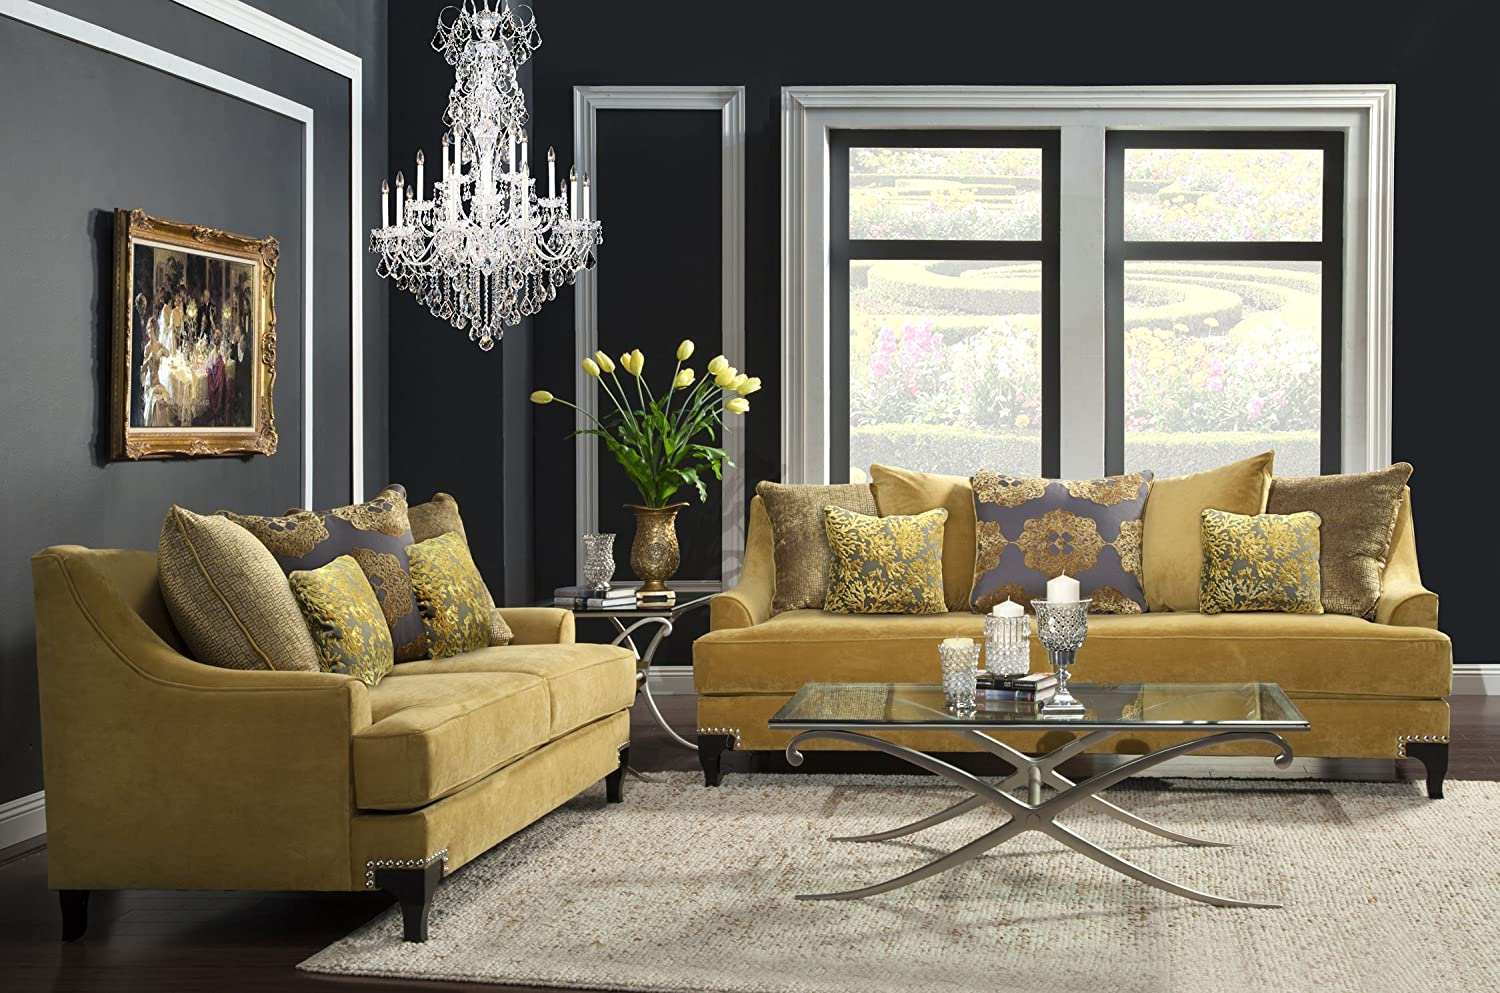 Furniture of America 2-Piece Argenie Fabric Upholstered Sofa Set - Gold